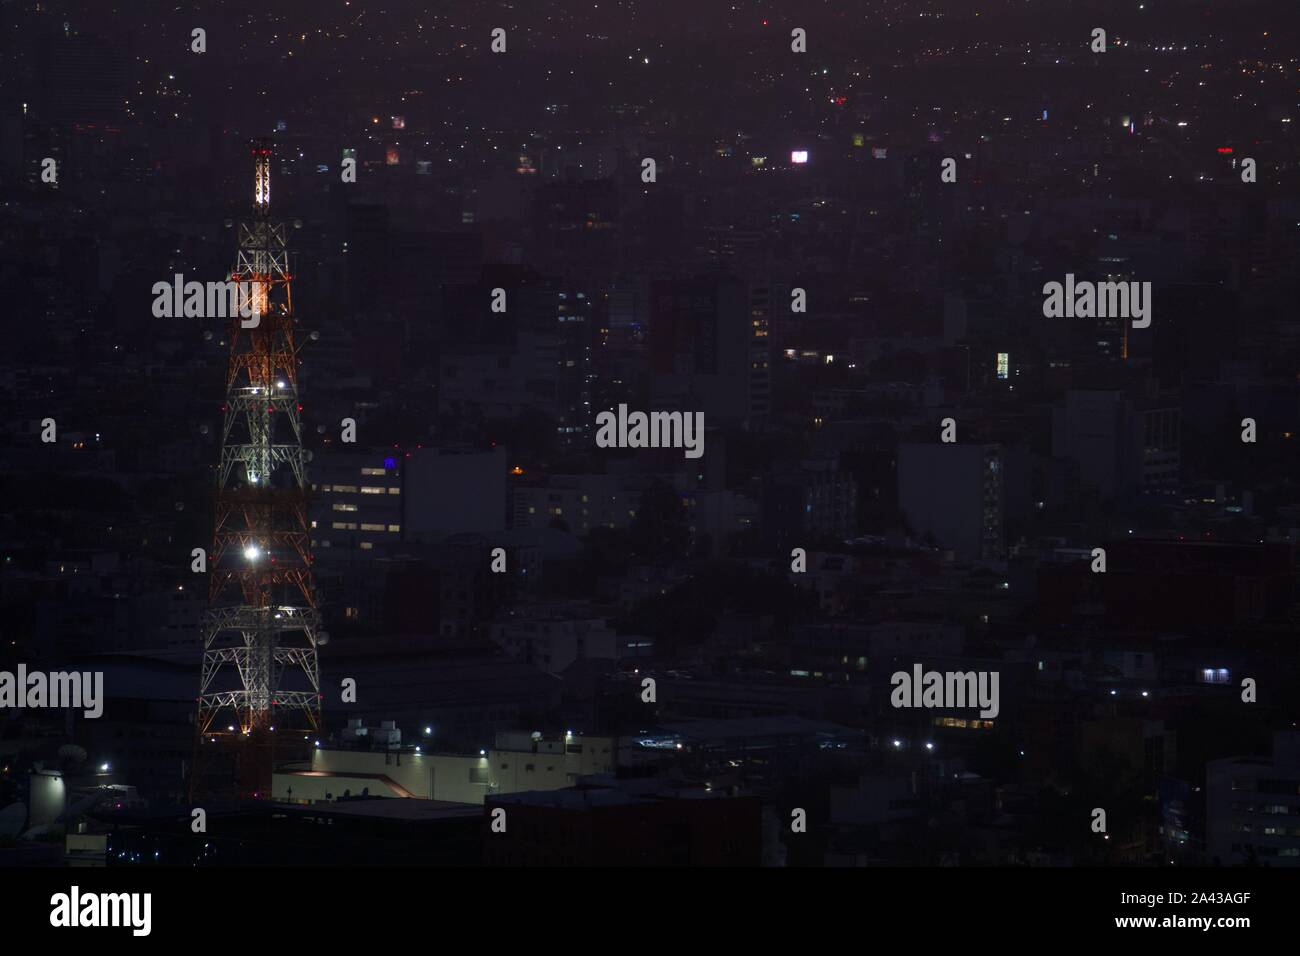 Vintage red and white radio tower at night, backed by city lights and urban density. Mexico City, Mexico. Stock Photo